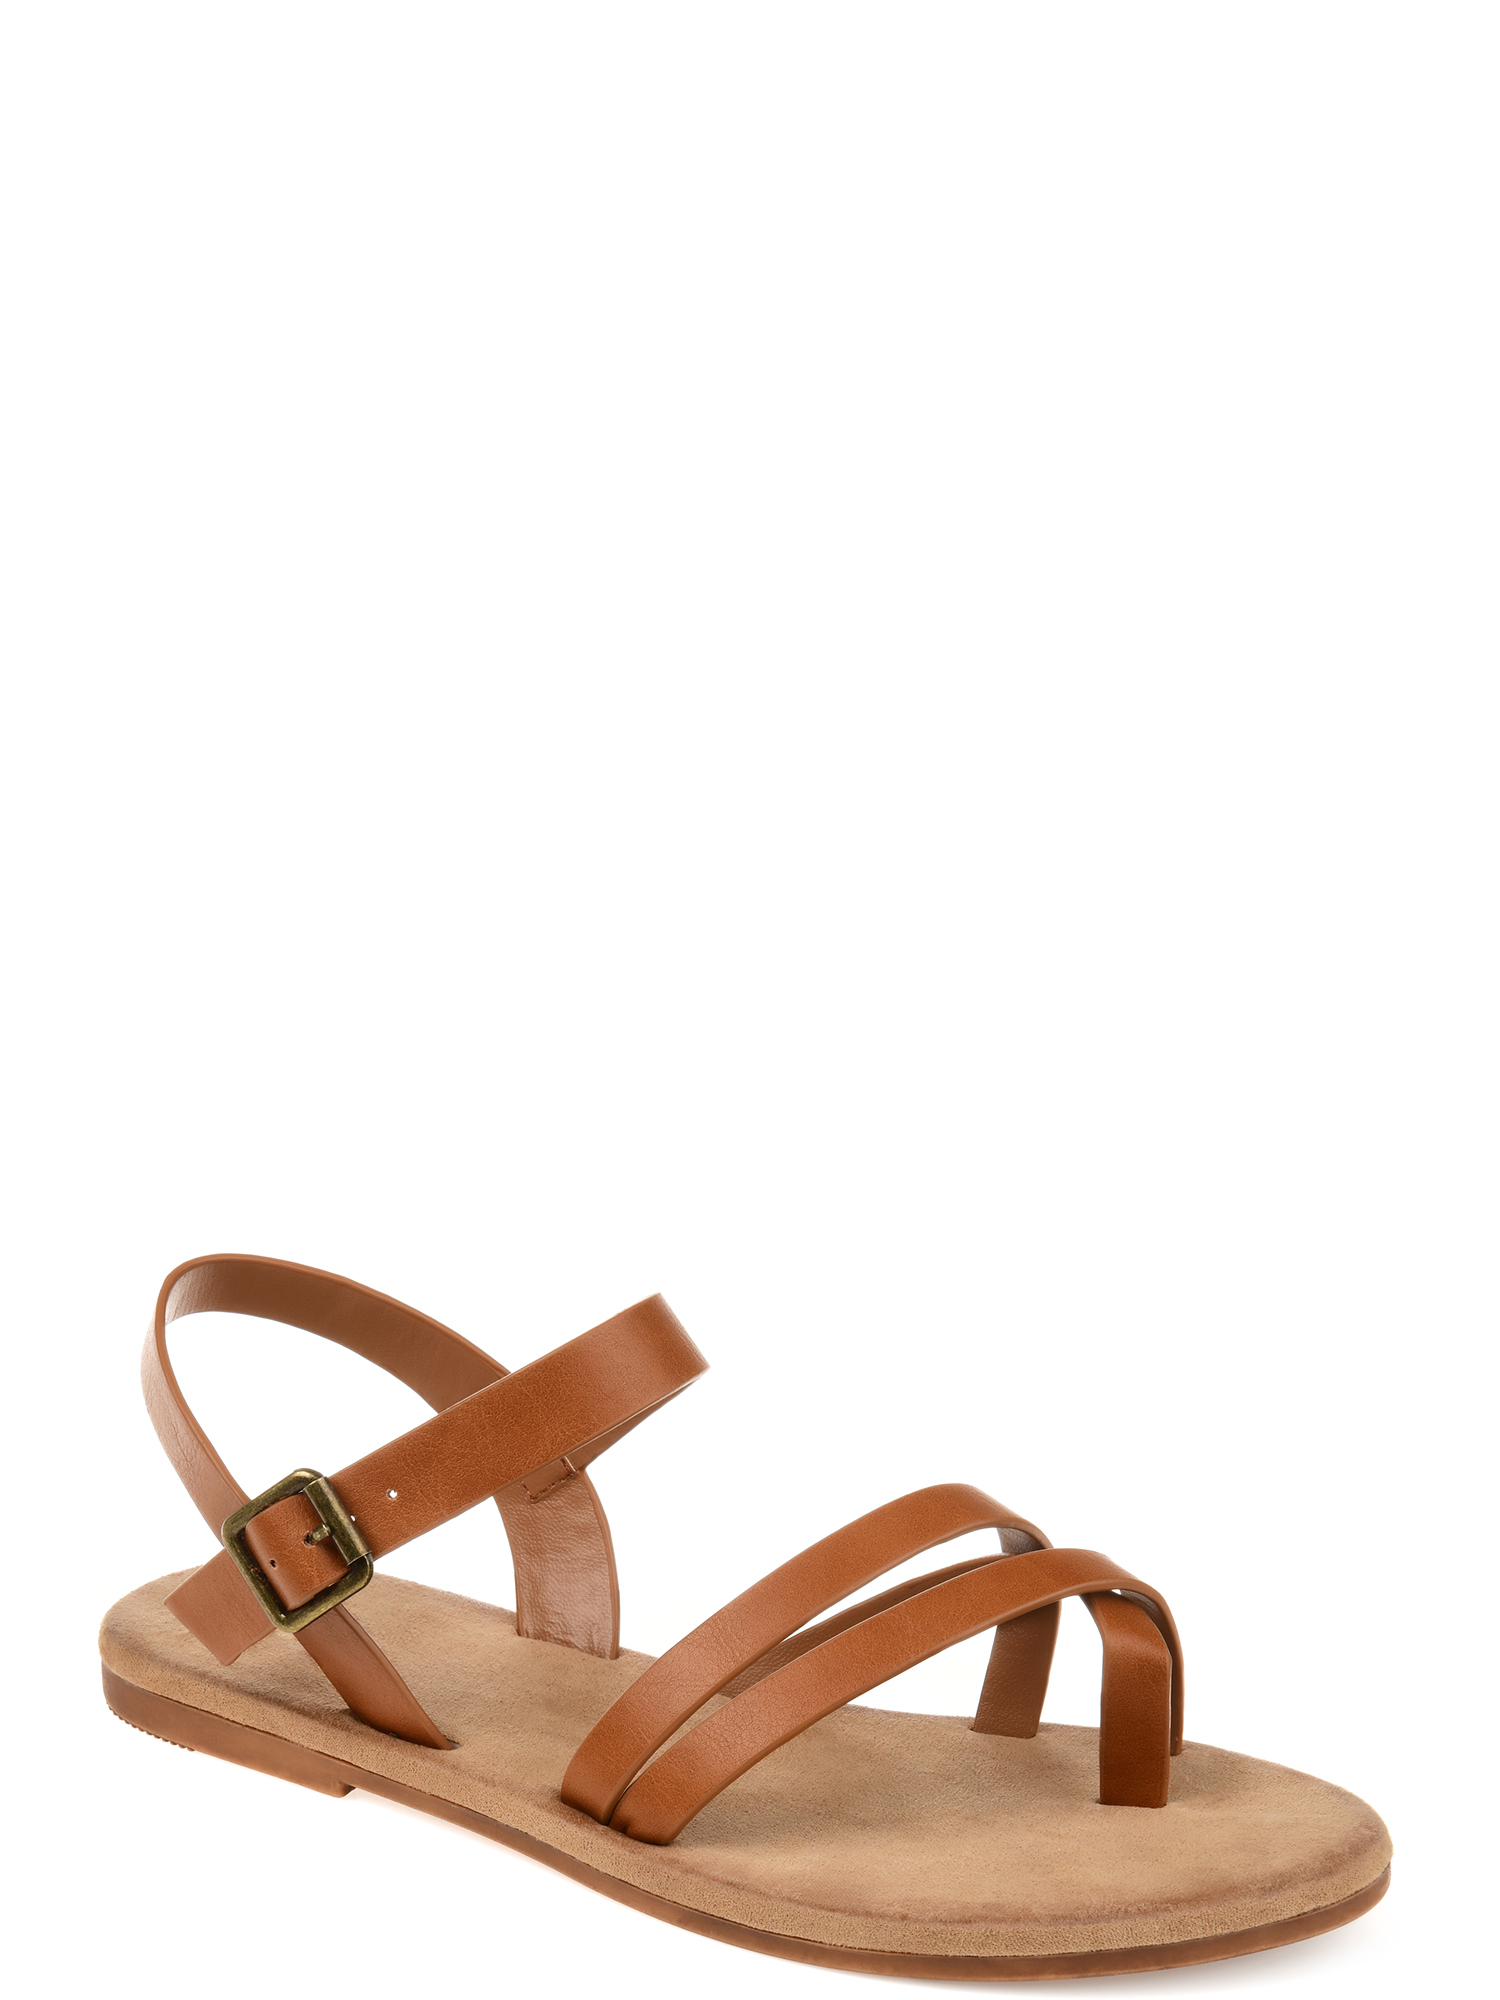 Brinley Co. Womens Strappy Ankle Wrap Sandal